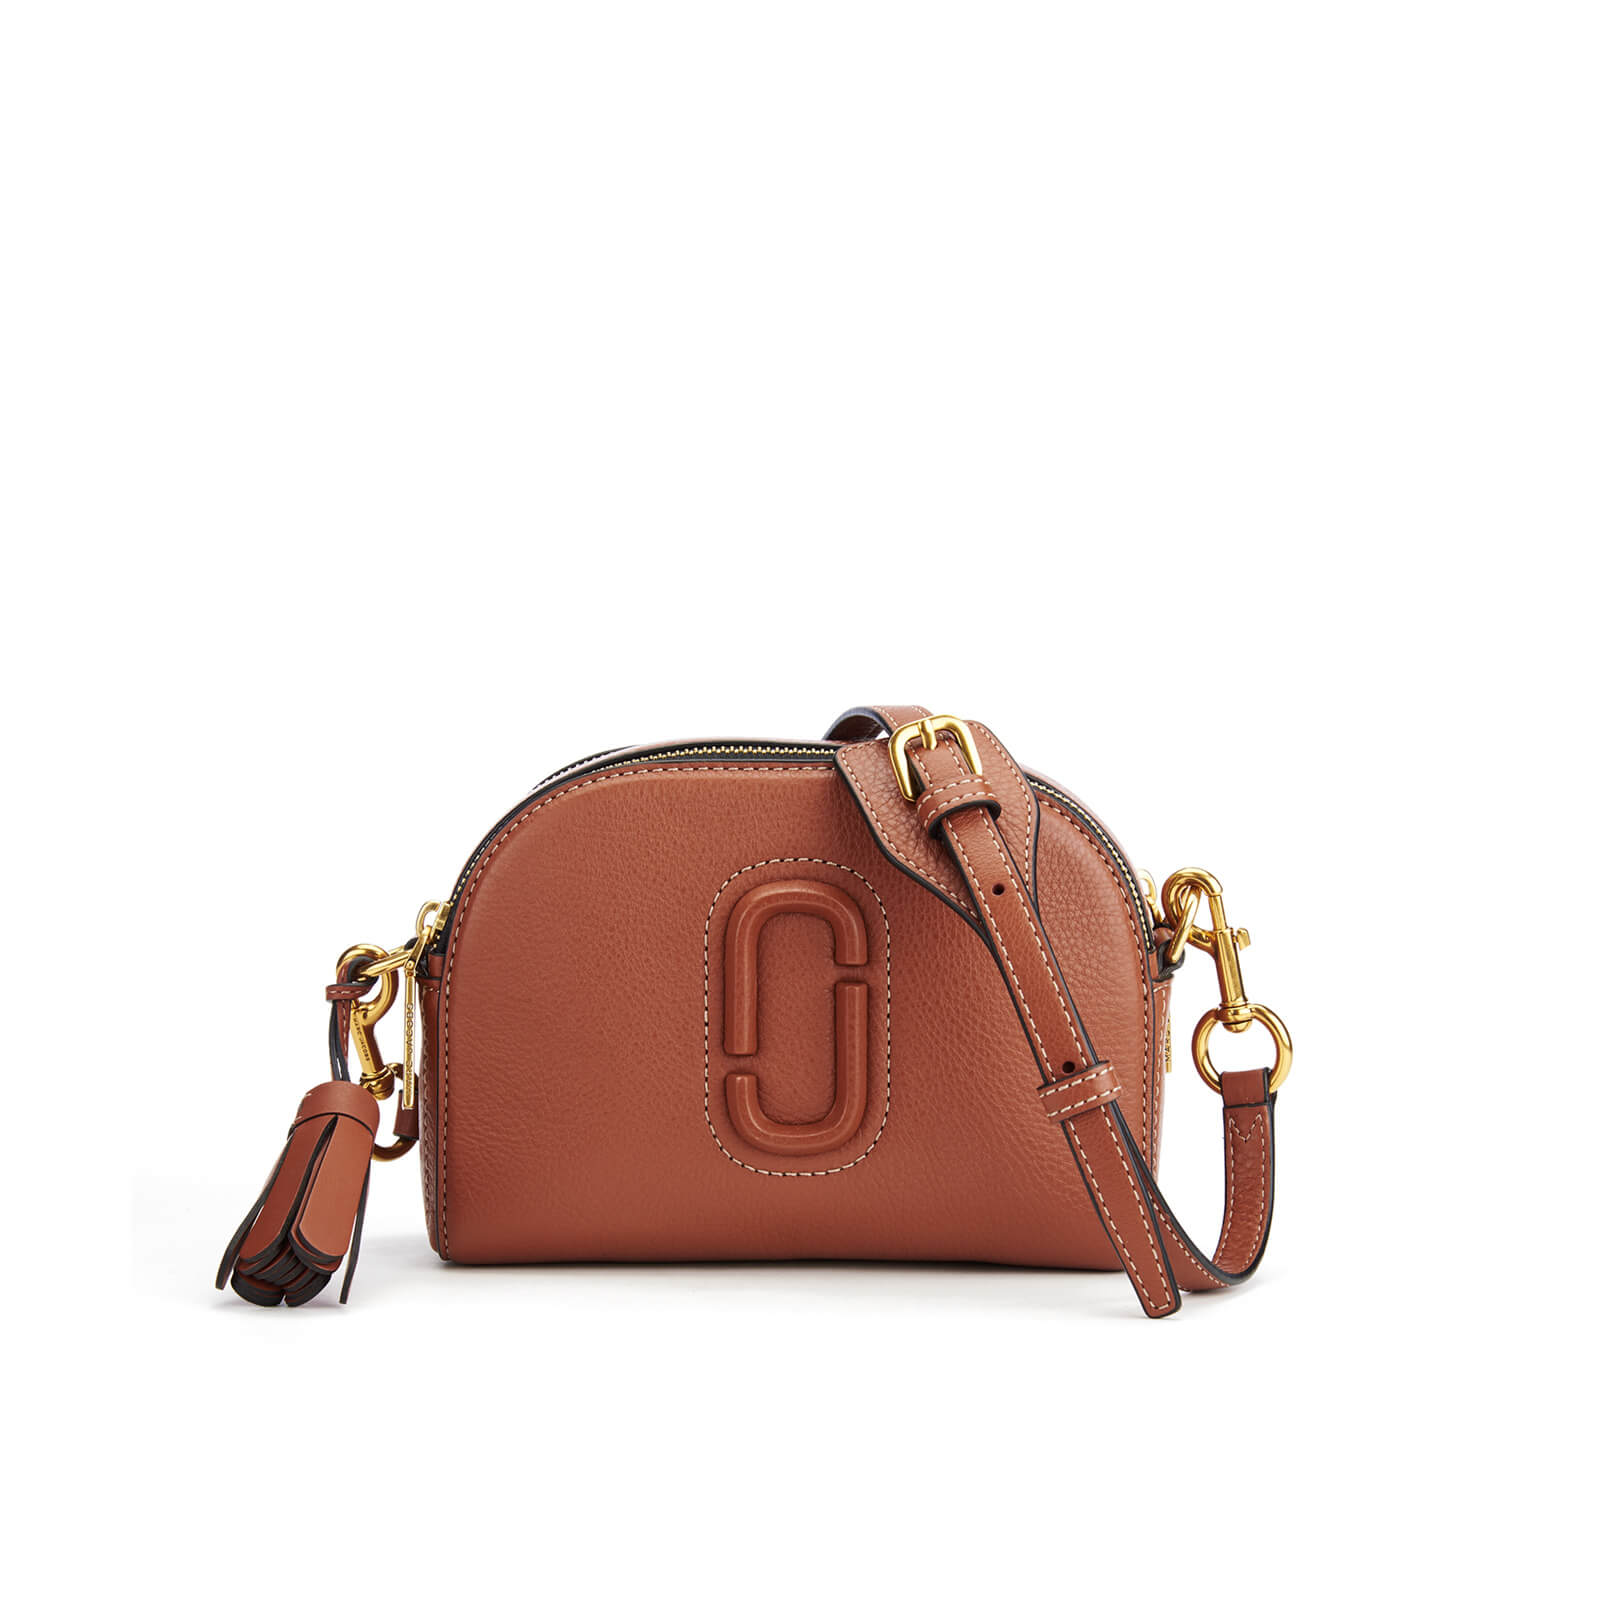 ff1afc49afdd Marc Jacobs Women s Shutter Small Camera Bag - Cognac - Free UK Delivery  over £50